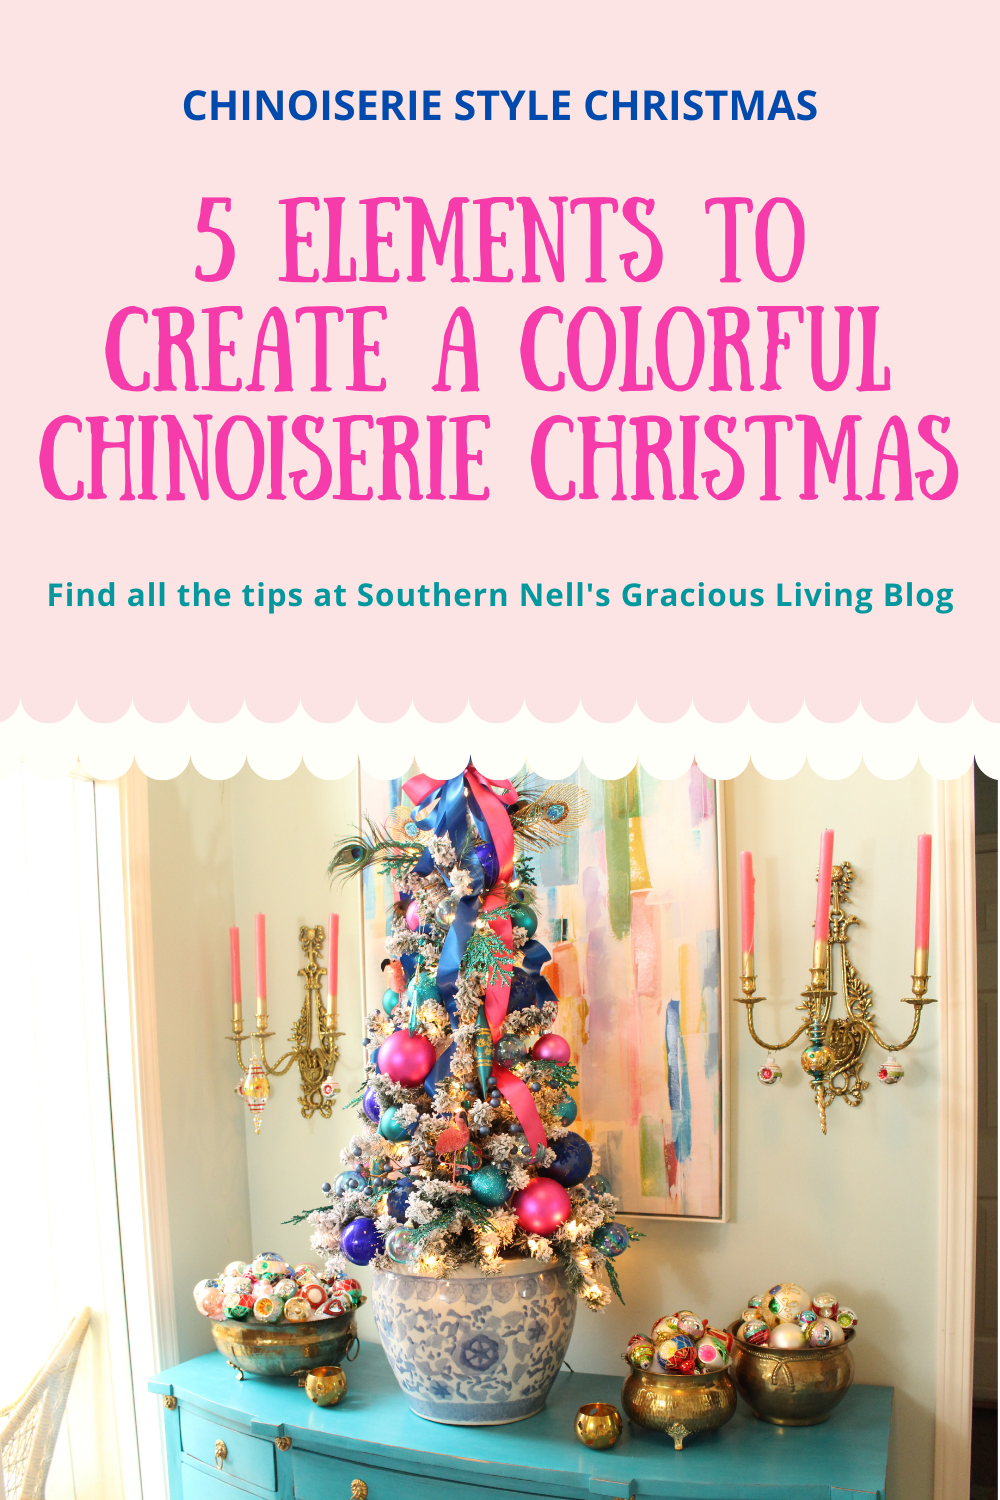 Colorful Chinoiserie Christmas Decor Ideas